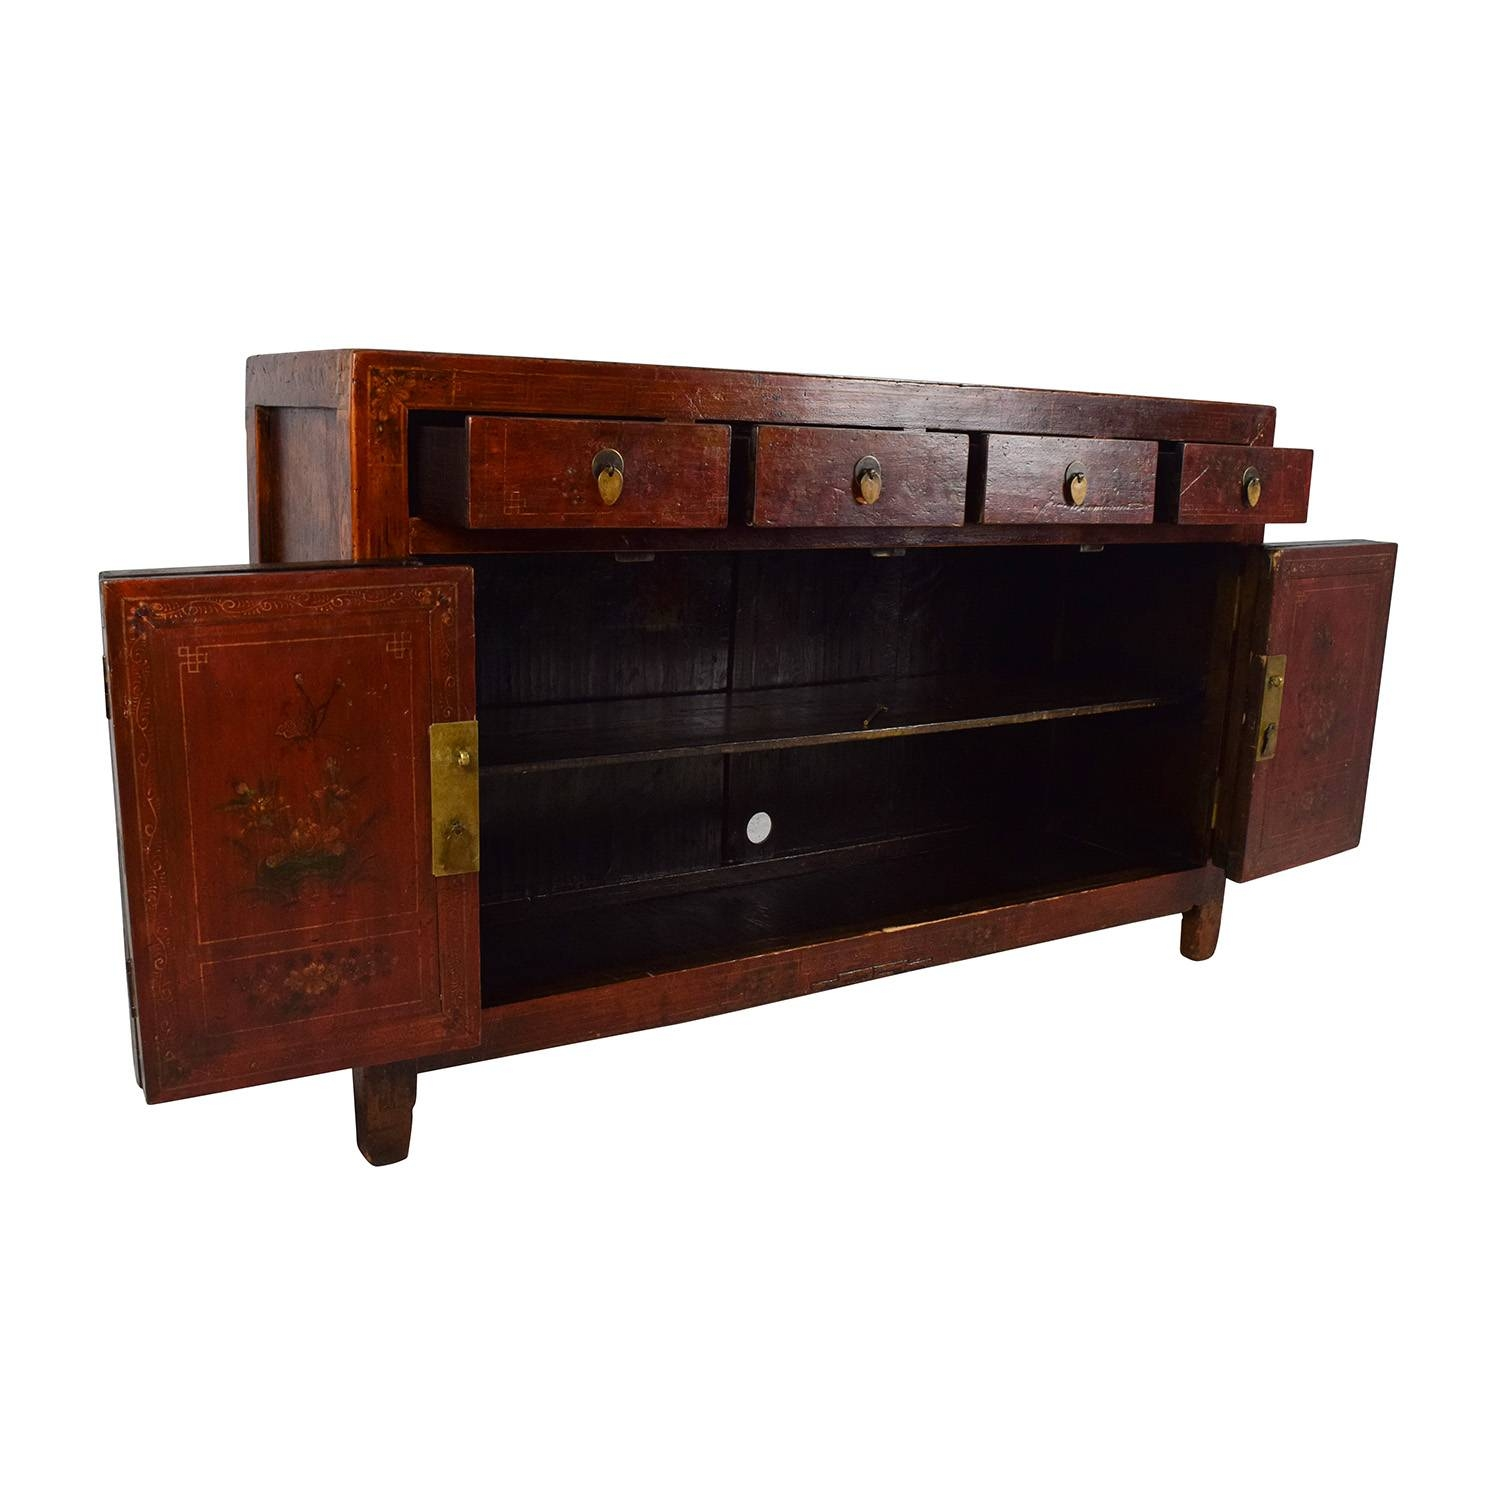 66% Off - Solid Wood Southeast Asian Credenza / Storage intended for Asian Sideboards (Image 8 of 30)